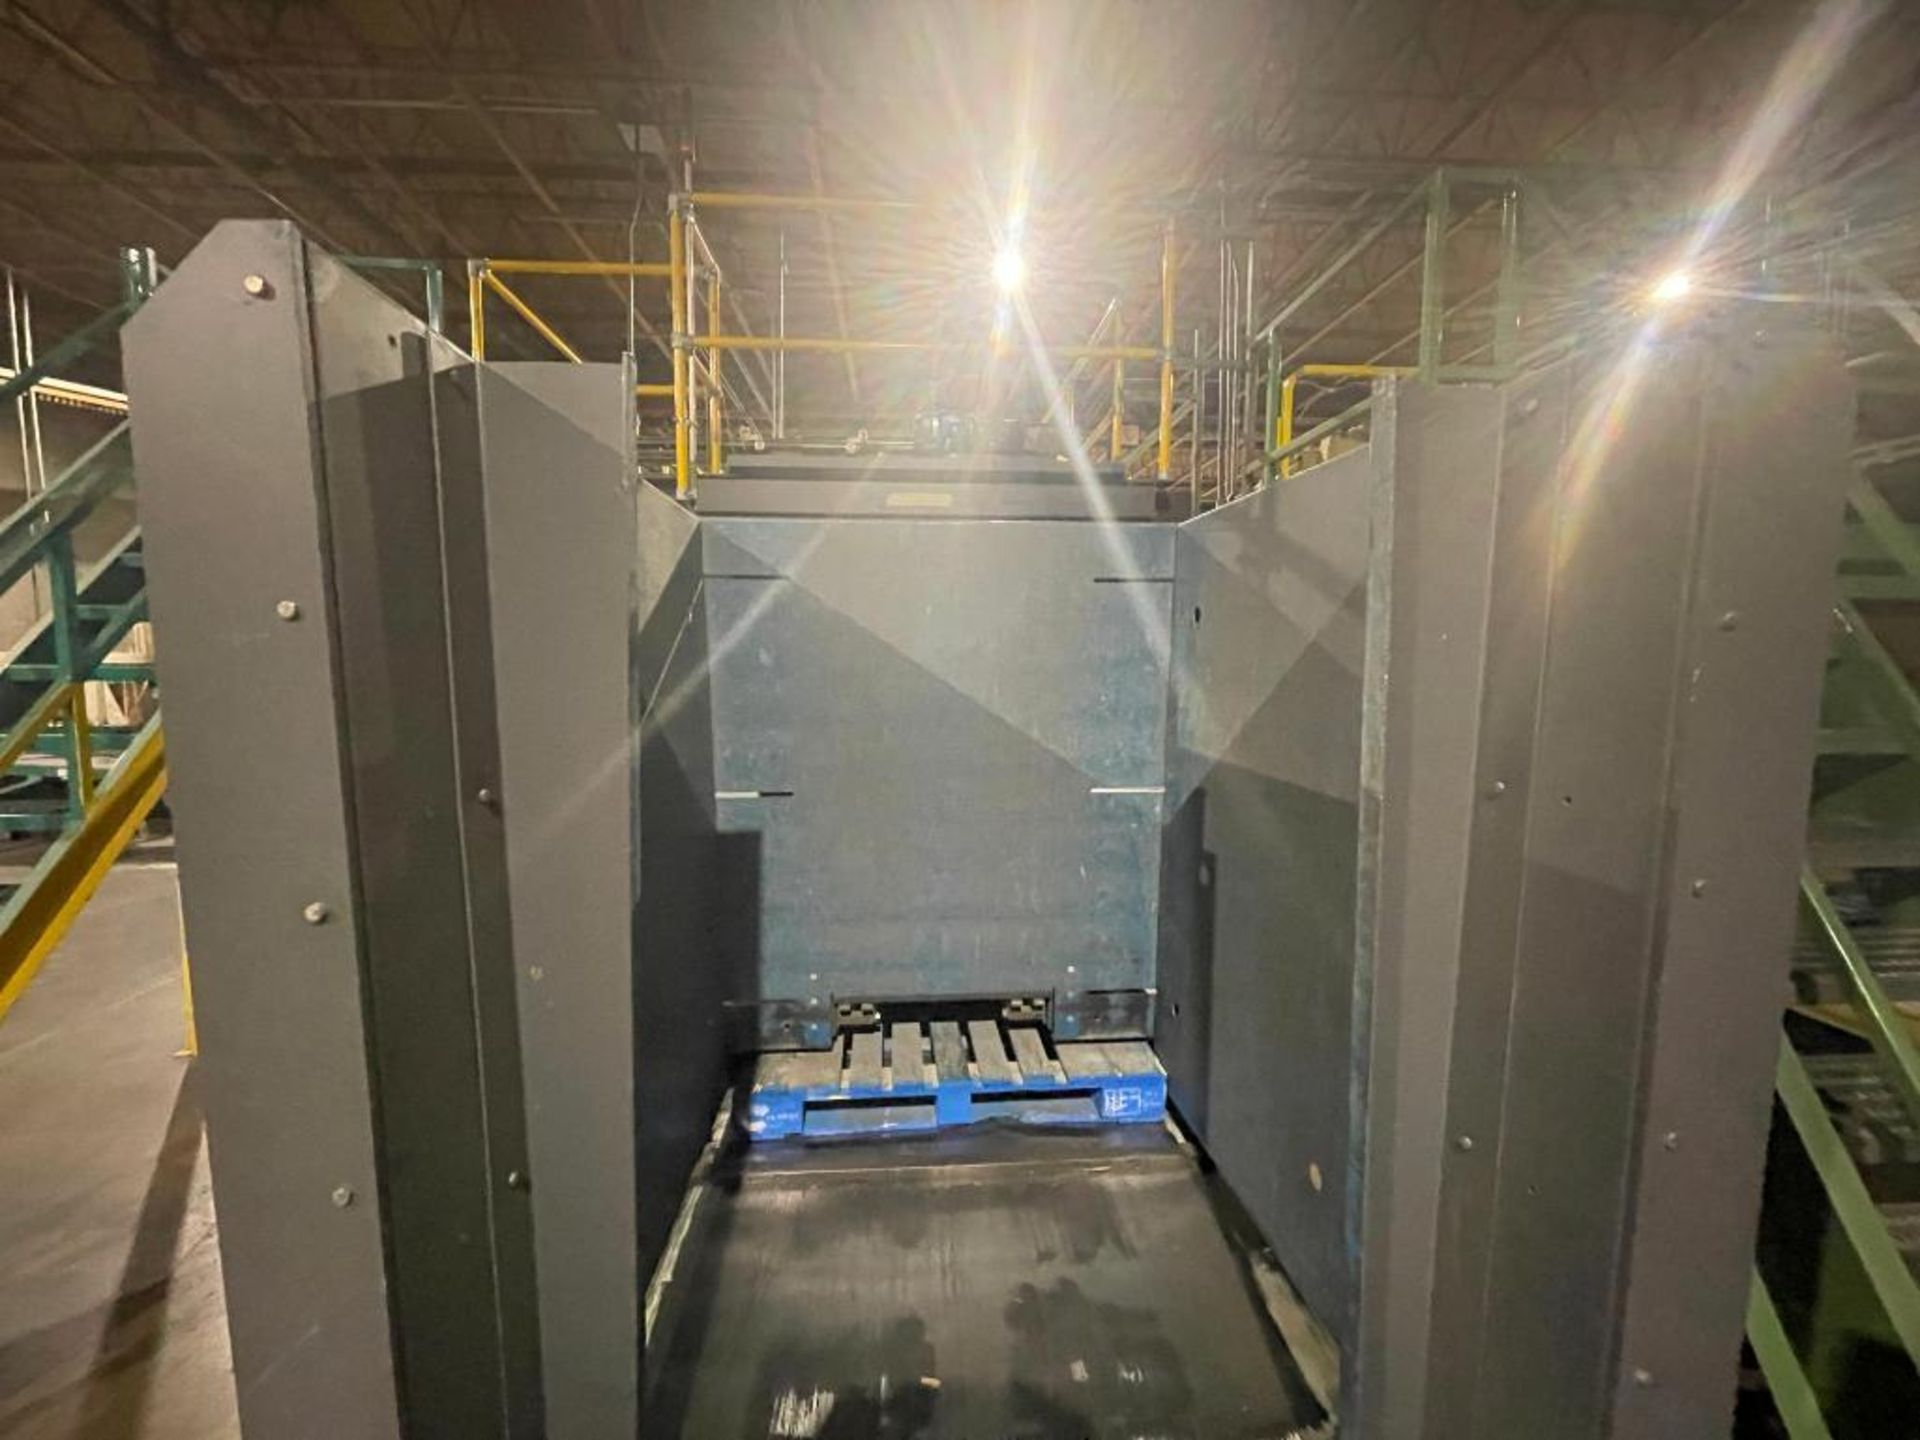 2008 Currie top to bottom palletizer, model PALLETIZER, sn 3348 - Image 5 of 28